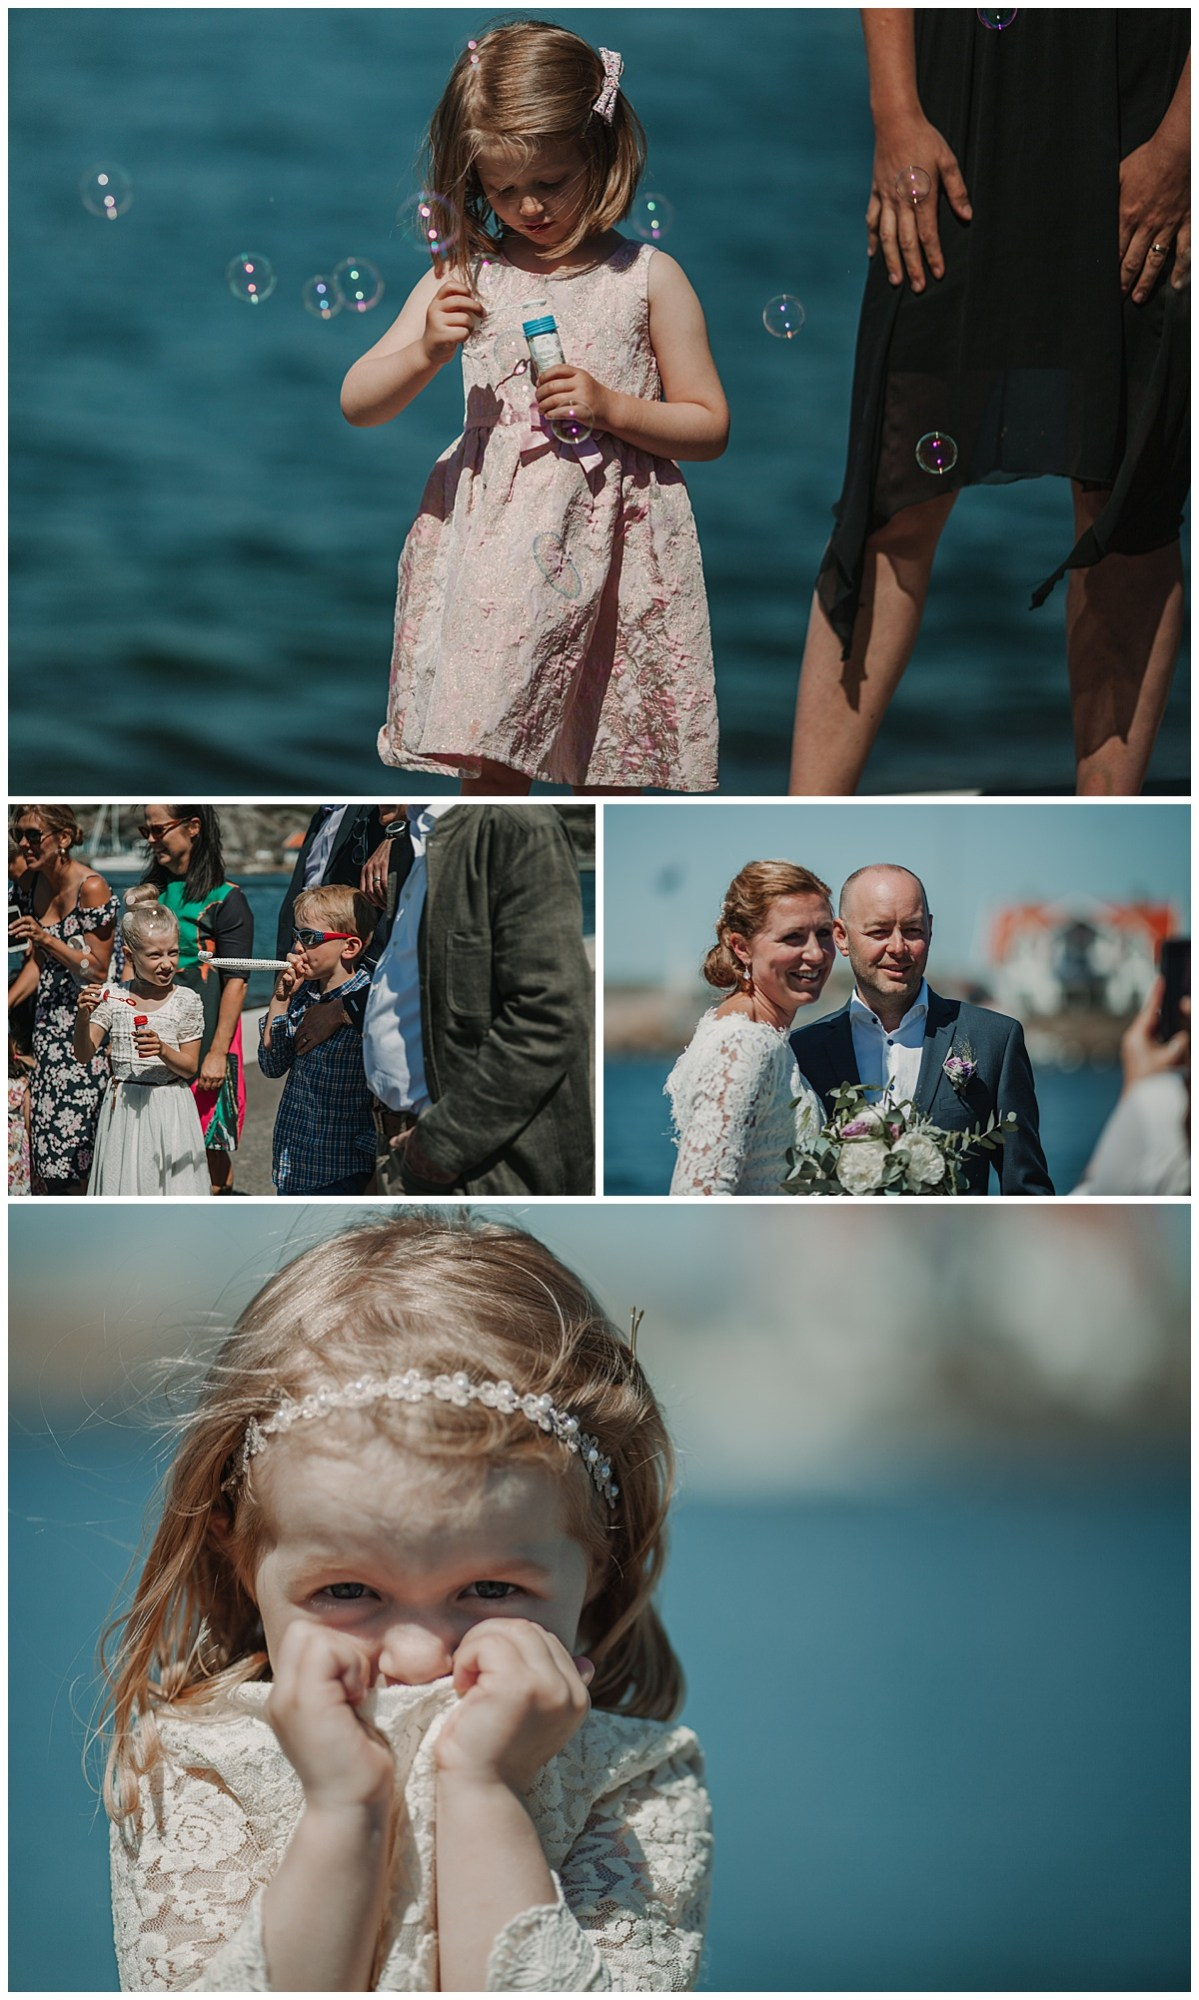 bröllopsfotograf Marstrand  blåsa bubblor gratulationer efter vigsel wedding photographer bubbles ceremony